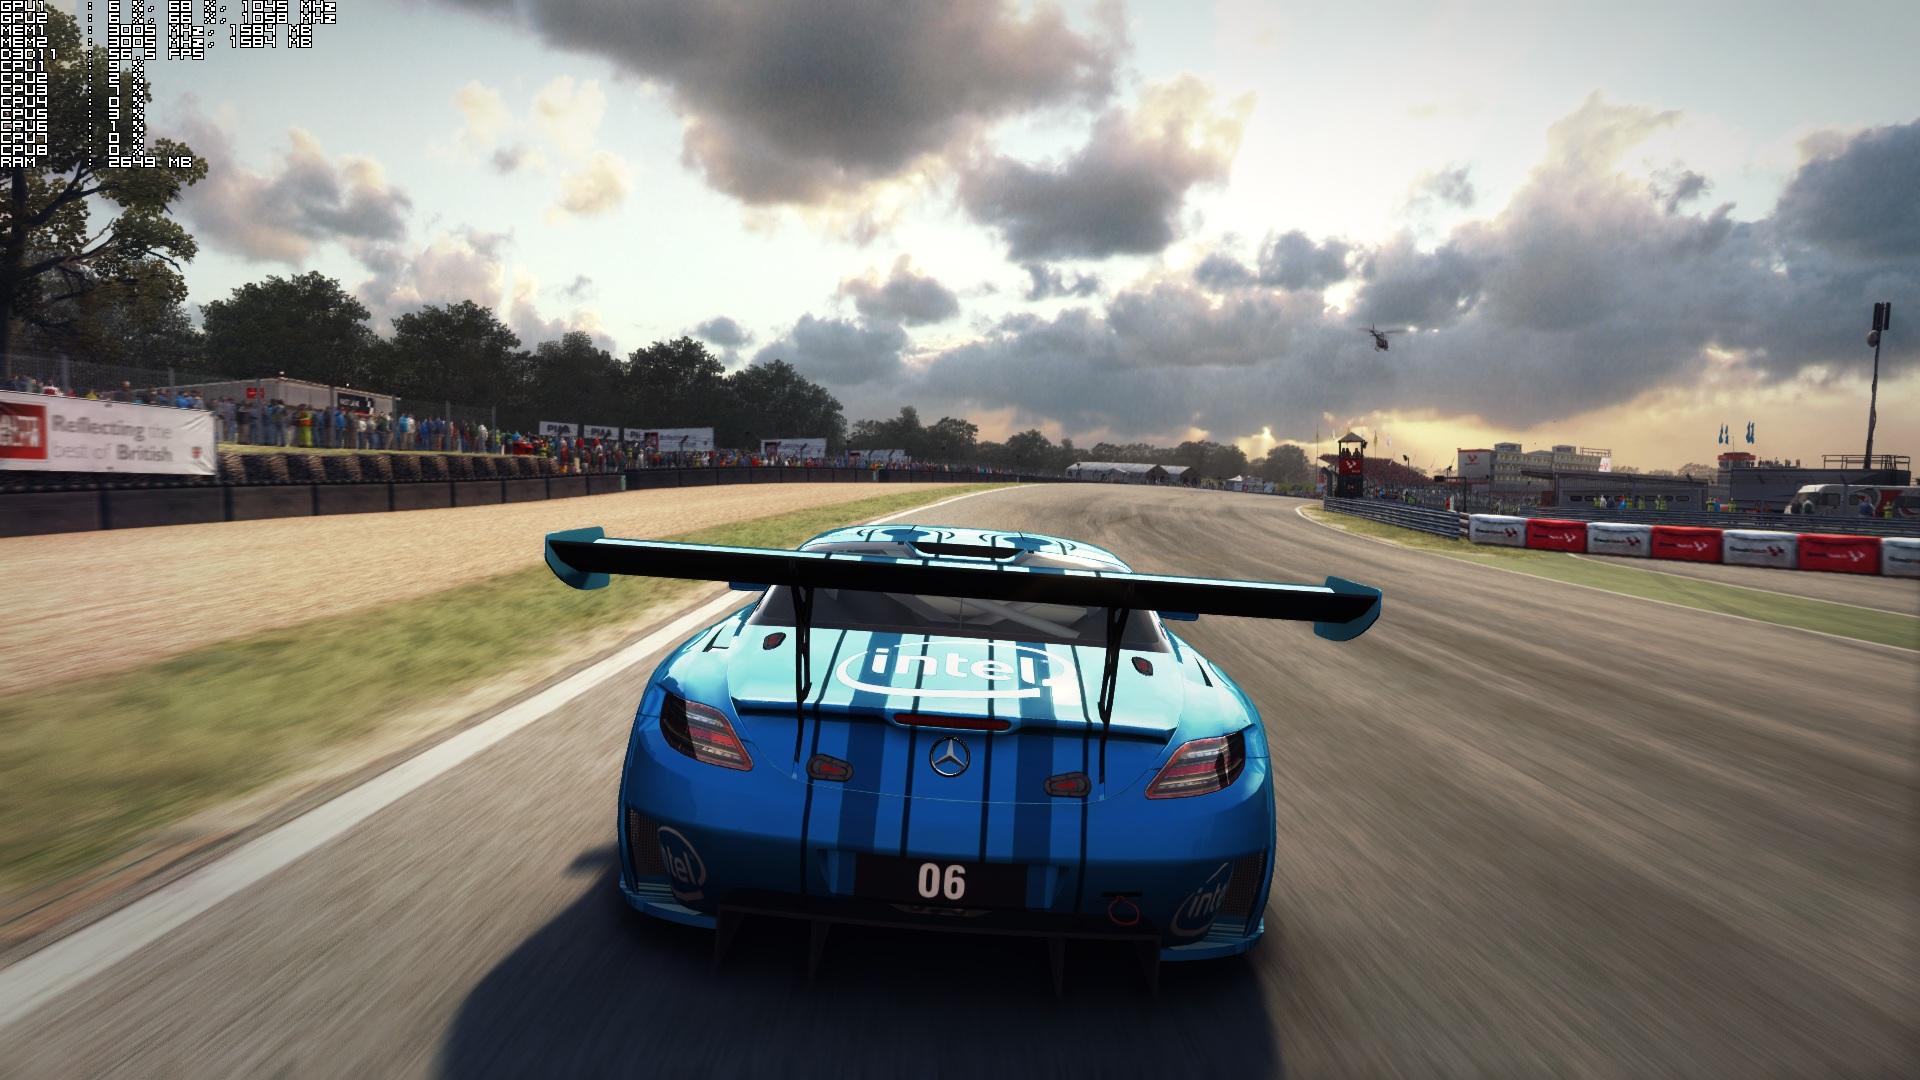 GRID Autosport Visual Analysis: Xbox 360 vs PS3 vs PC